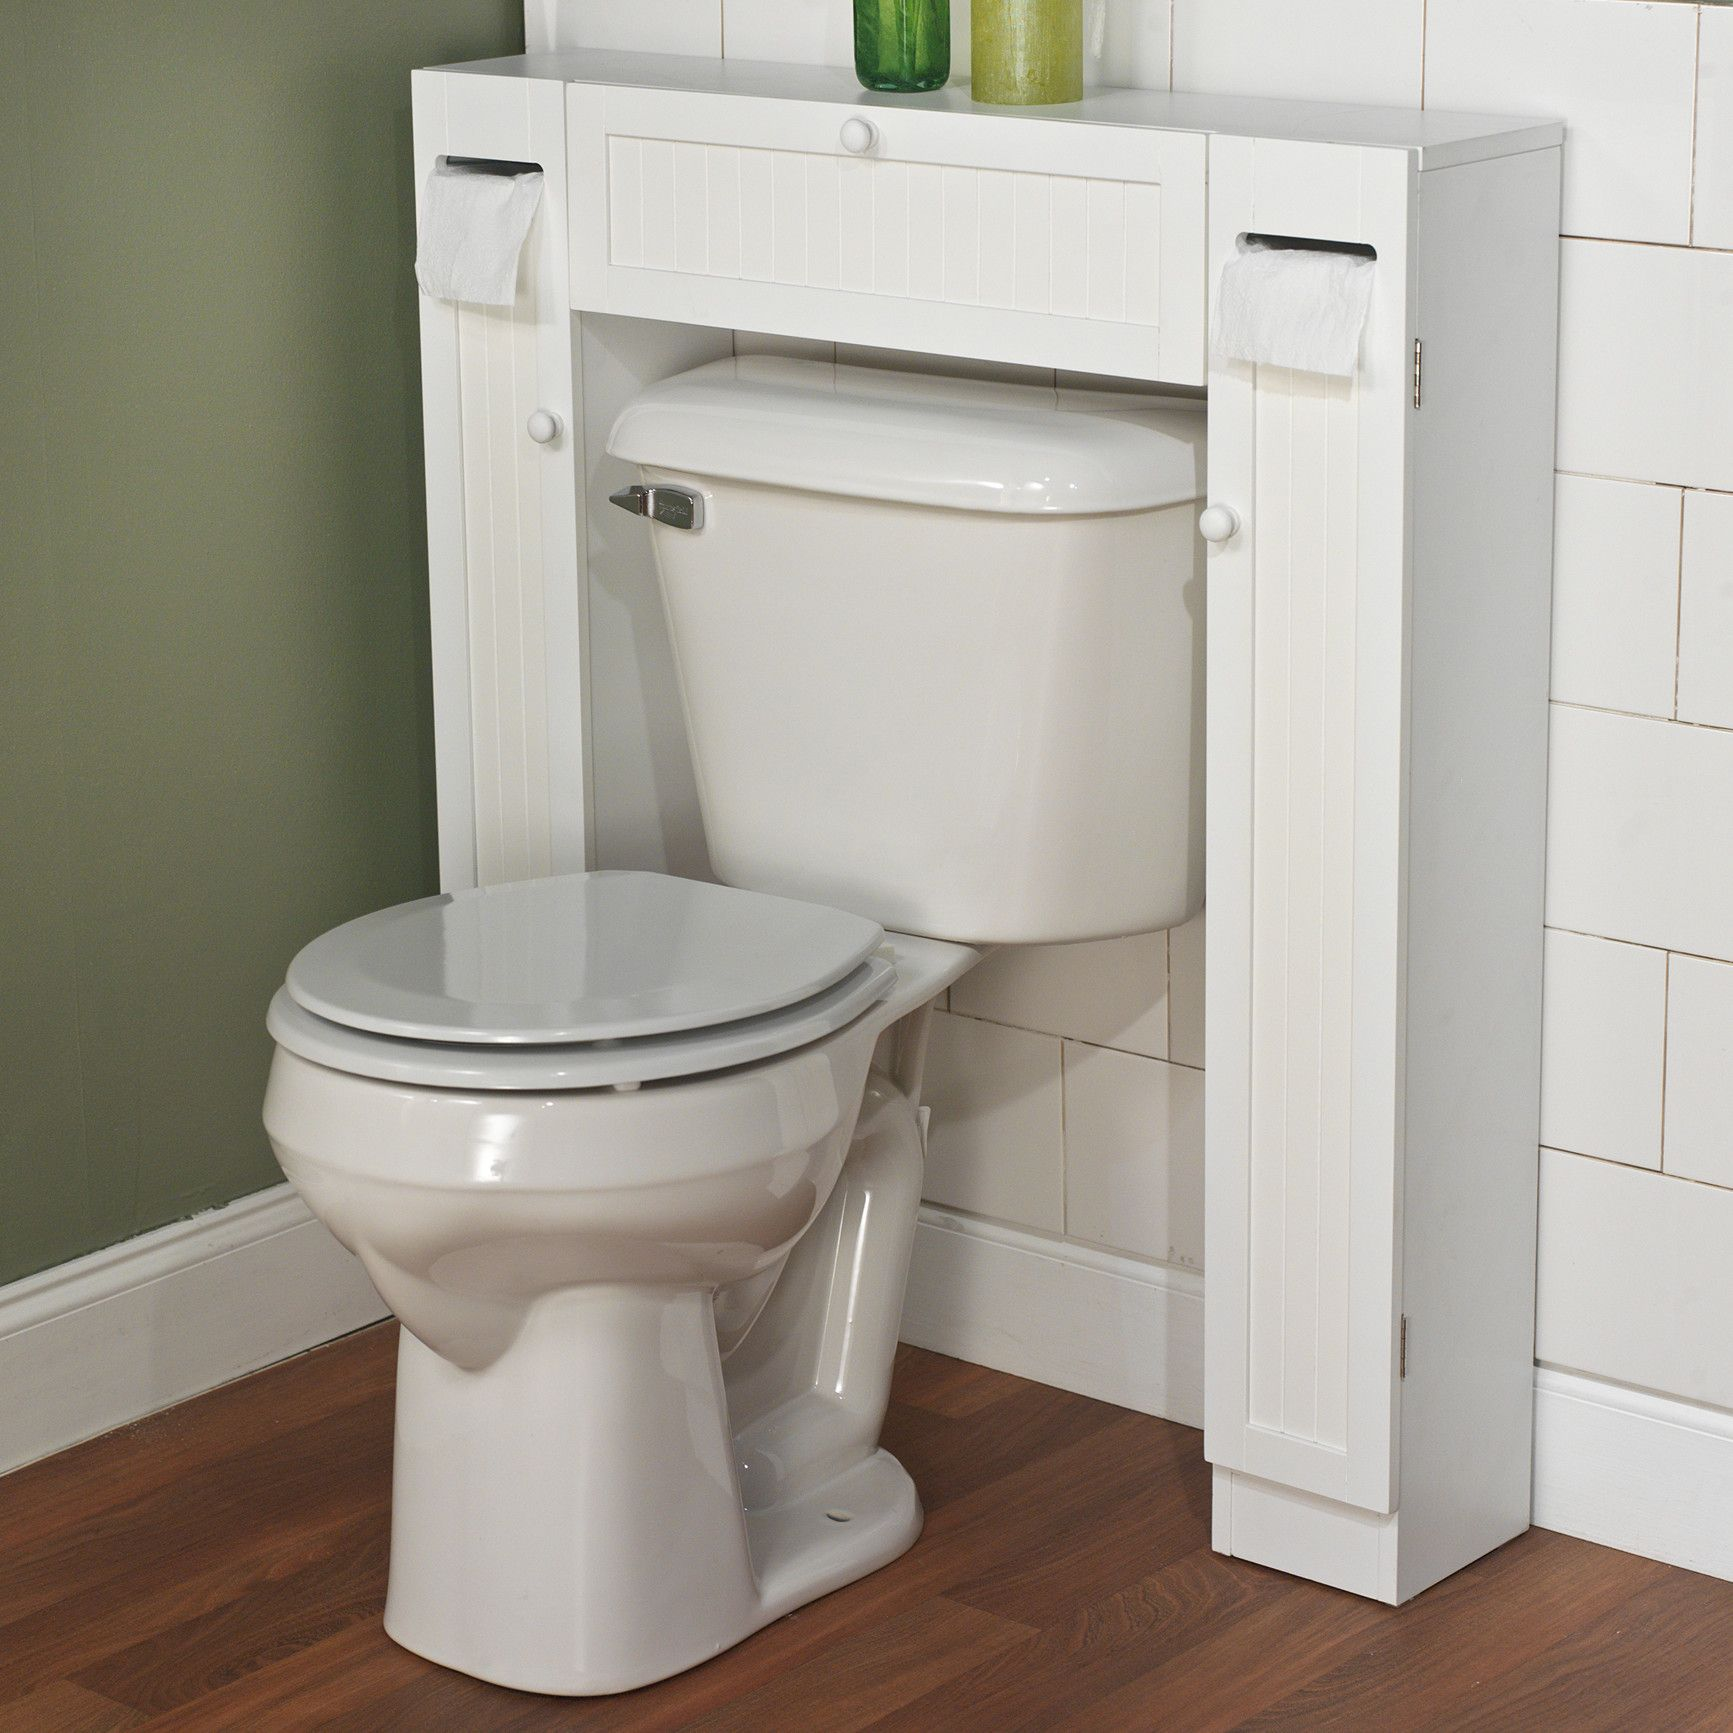 Over the Toilet Cabinet | Apartment | Pinterest | Toilet, Pedestal ...